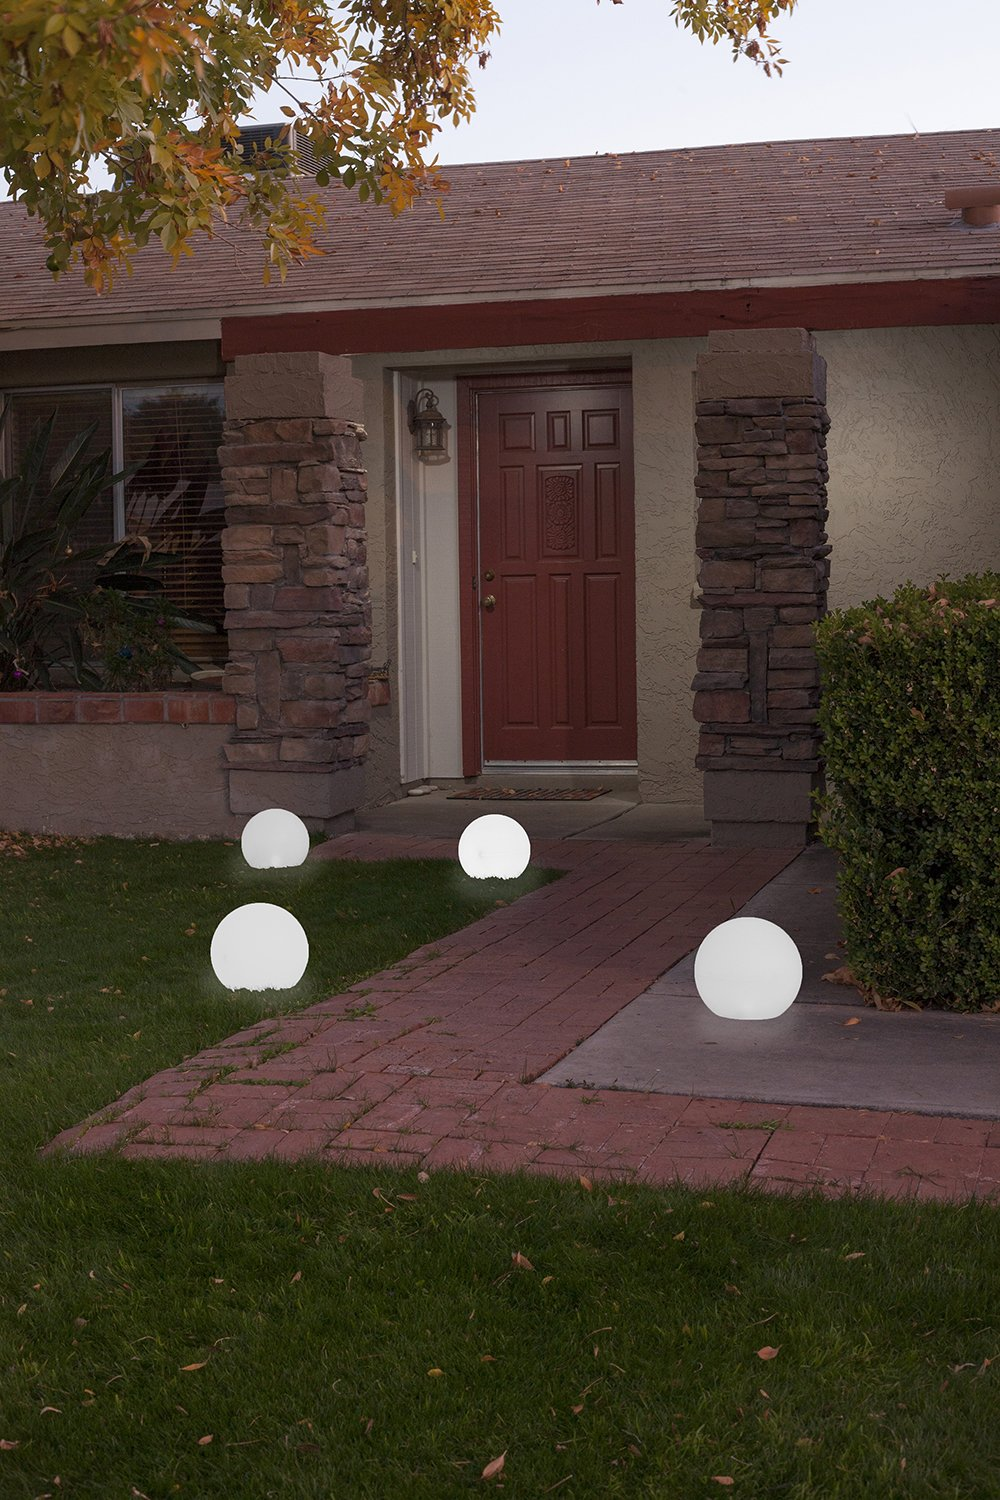 GalaxyGLO 9 inch Solar Powered Color Changing Globe for Pool or Patio - 2 pack by Sunsolar (Image #4)